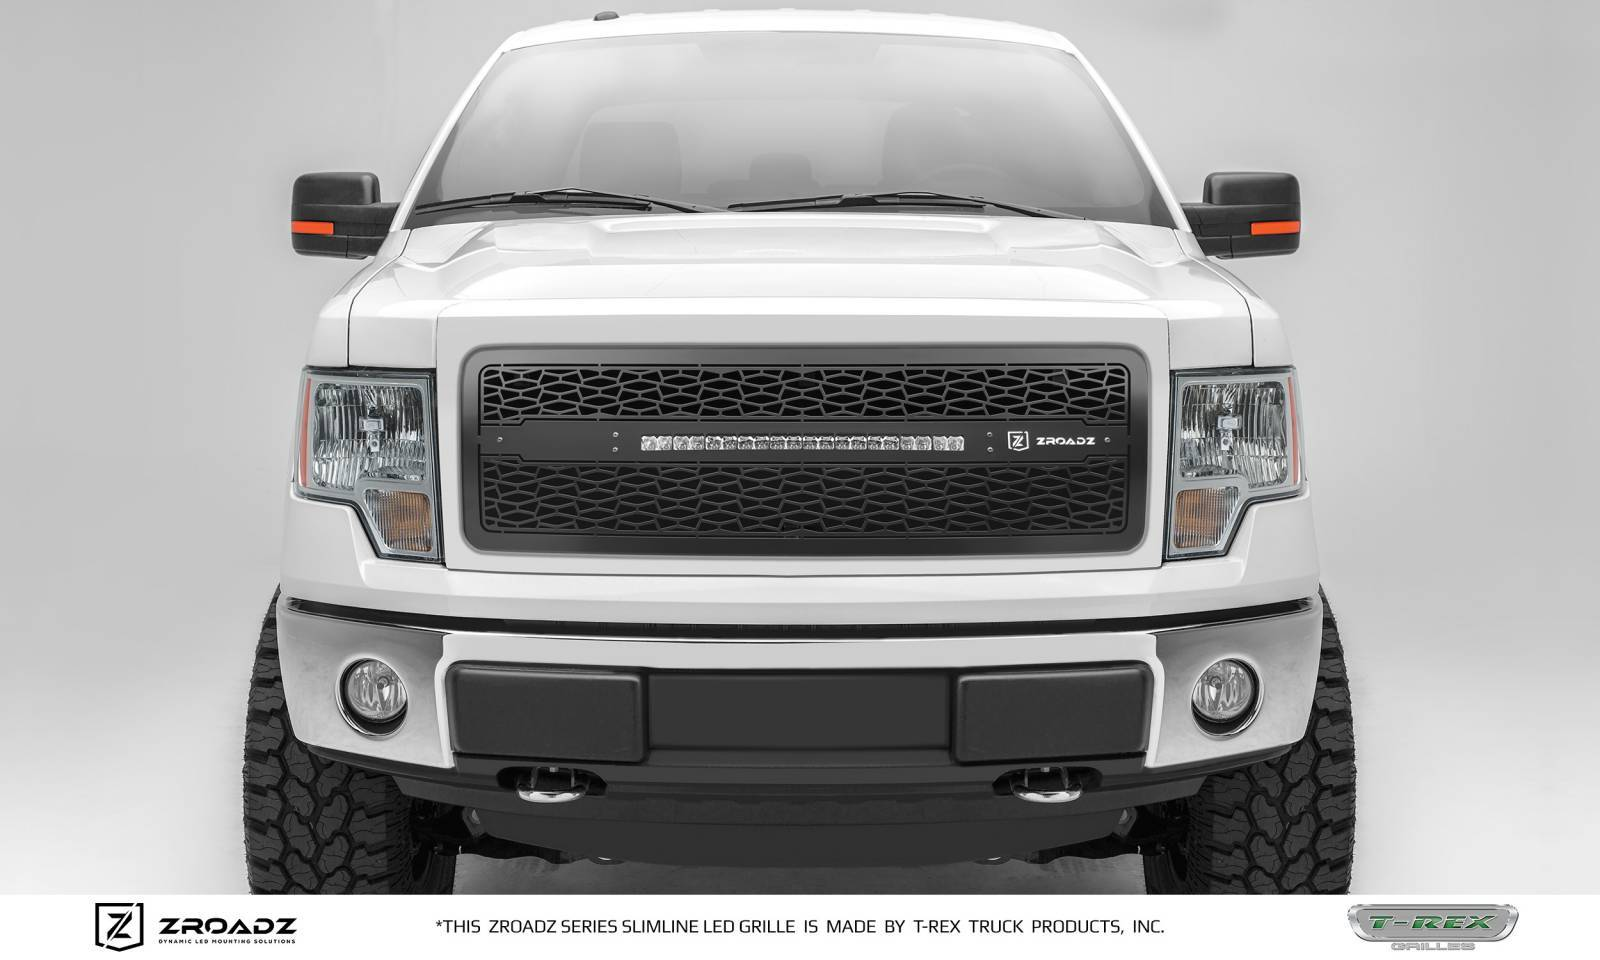 T-REX Grilles - 2013-2014 Ford F-150 Main Grille, Including (1) 20 Inch ZROADZ LED Straight Single Row Slim Light Bar - Z315721